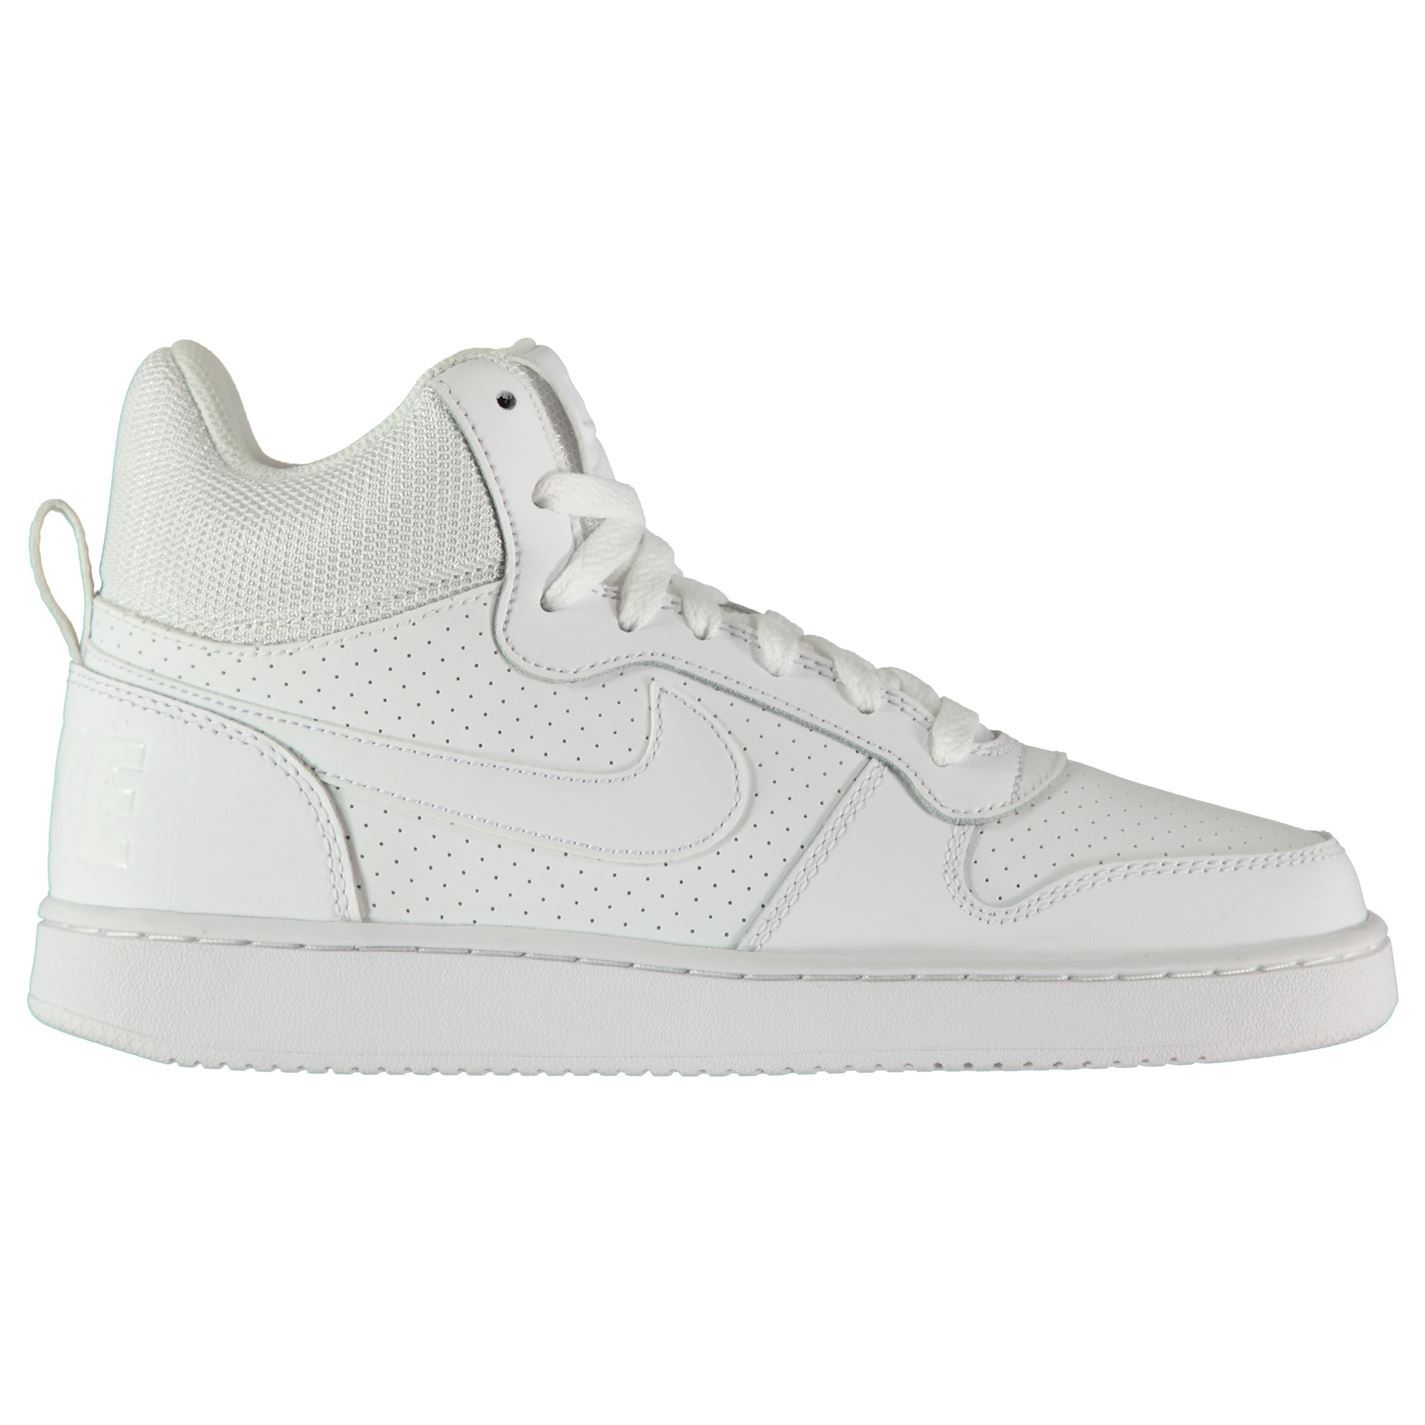 Nike Court Bgoldugh Mid Top Trainers Womens White Sports Trainers Sneakers